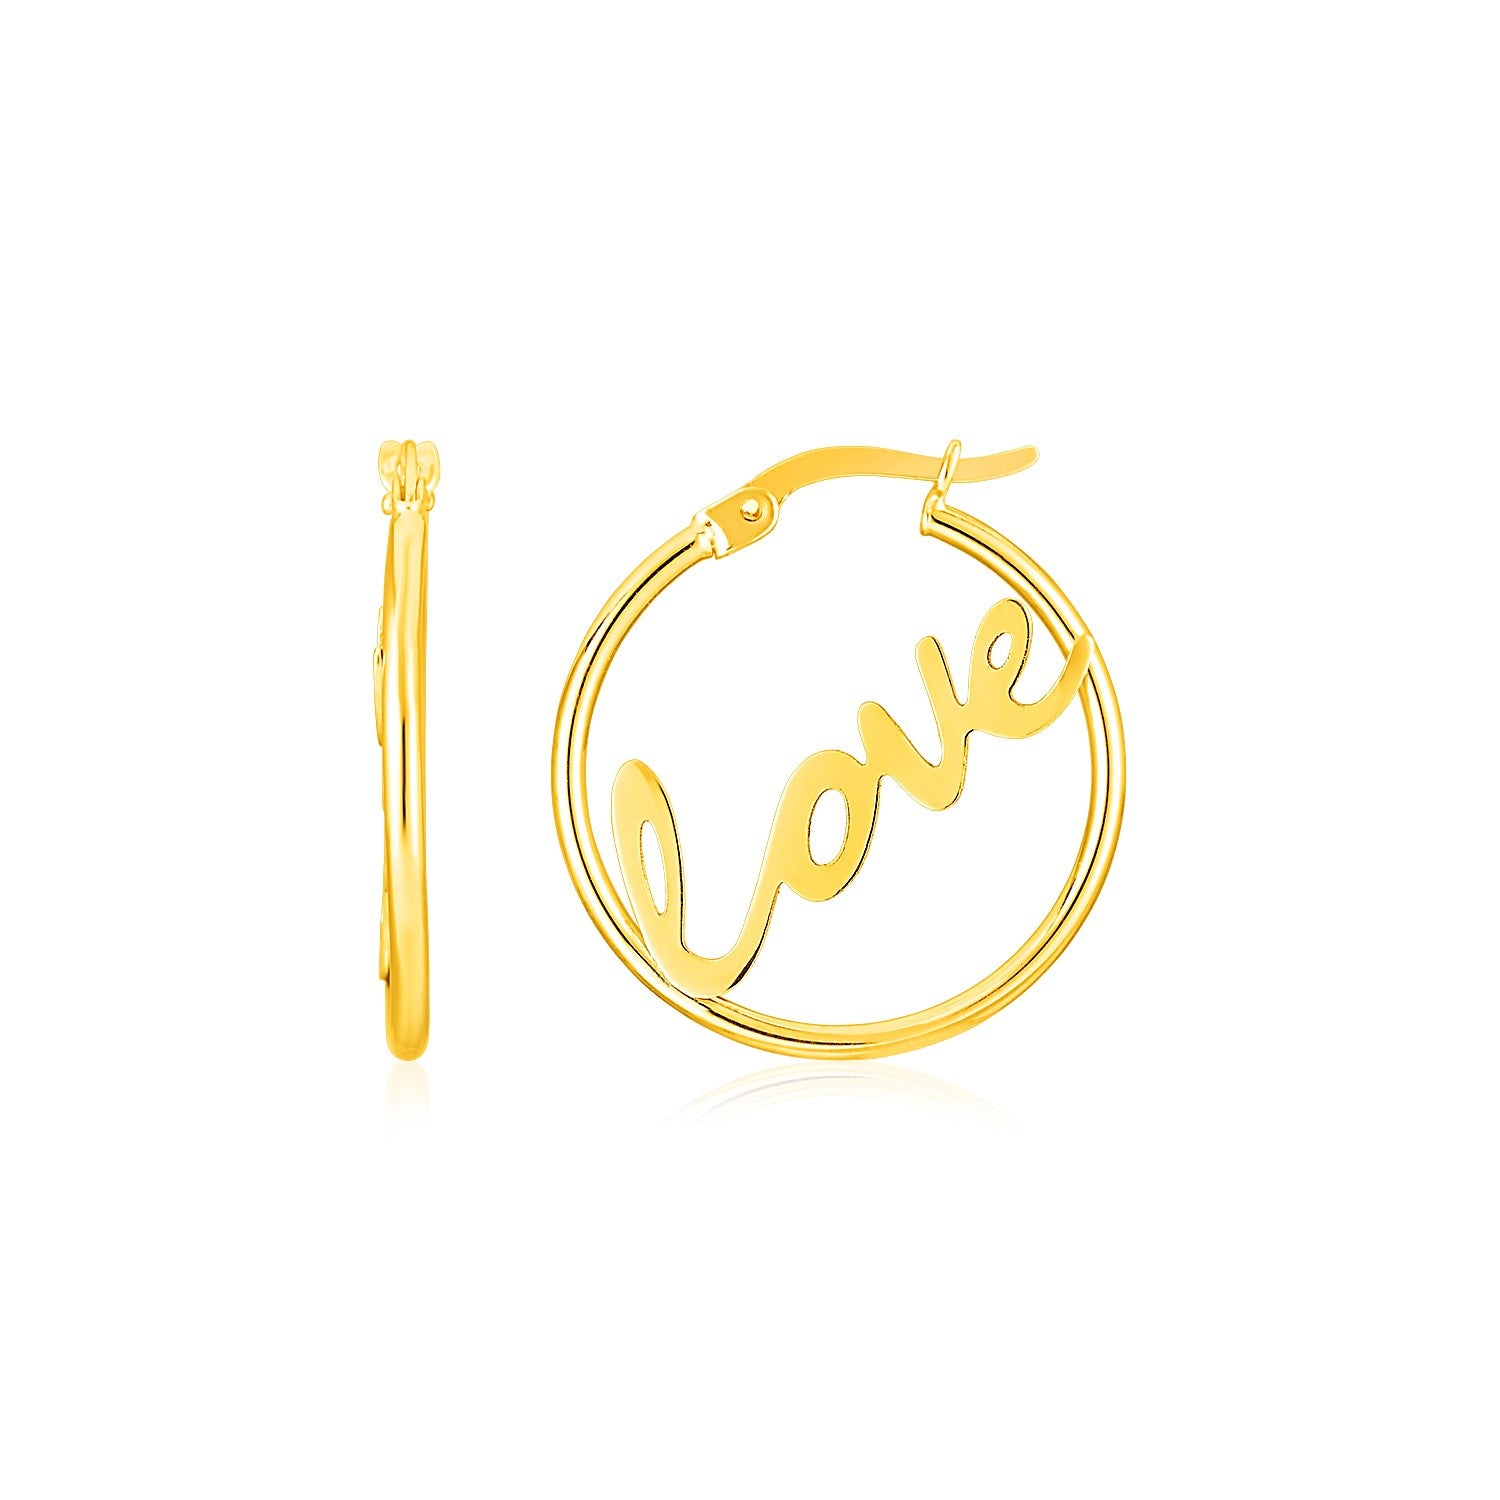 14K Yellow Gold Love Hoop Earrings